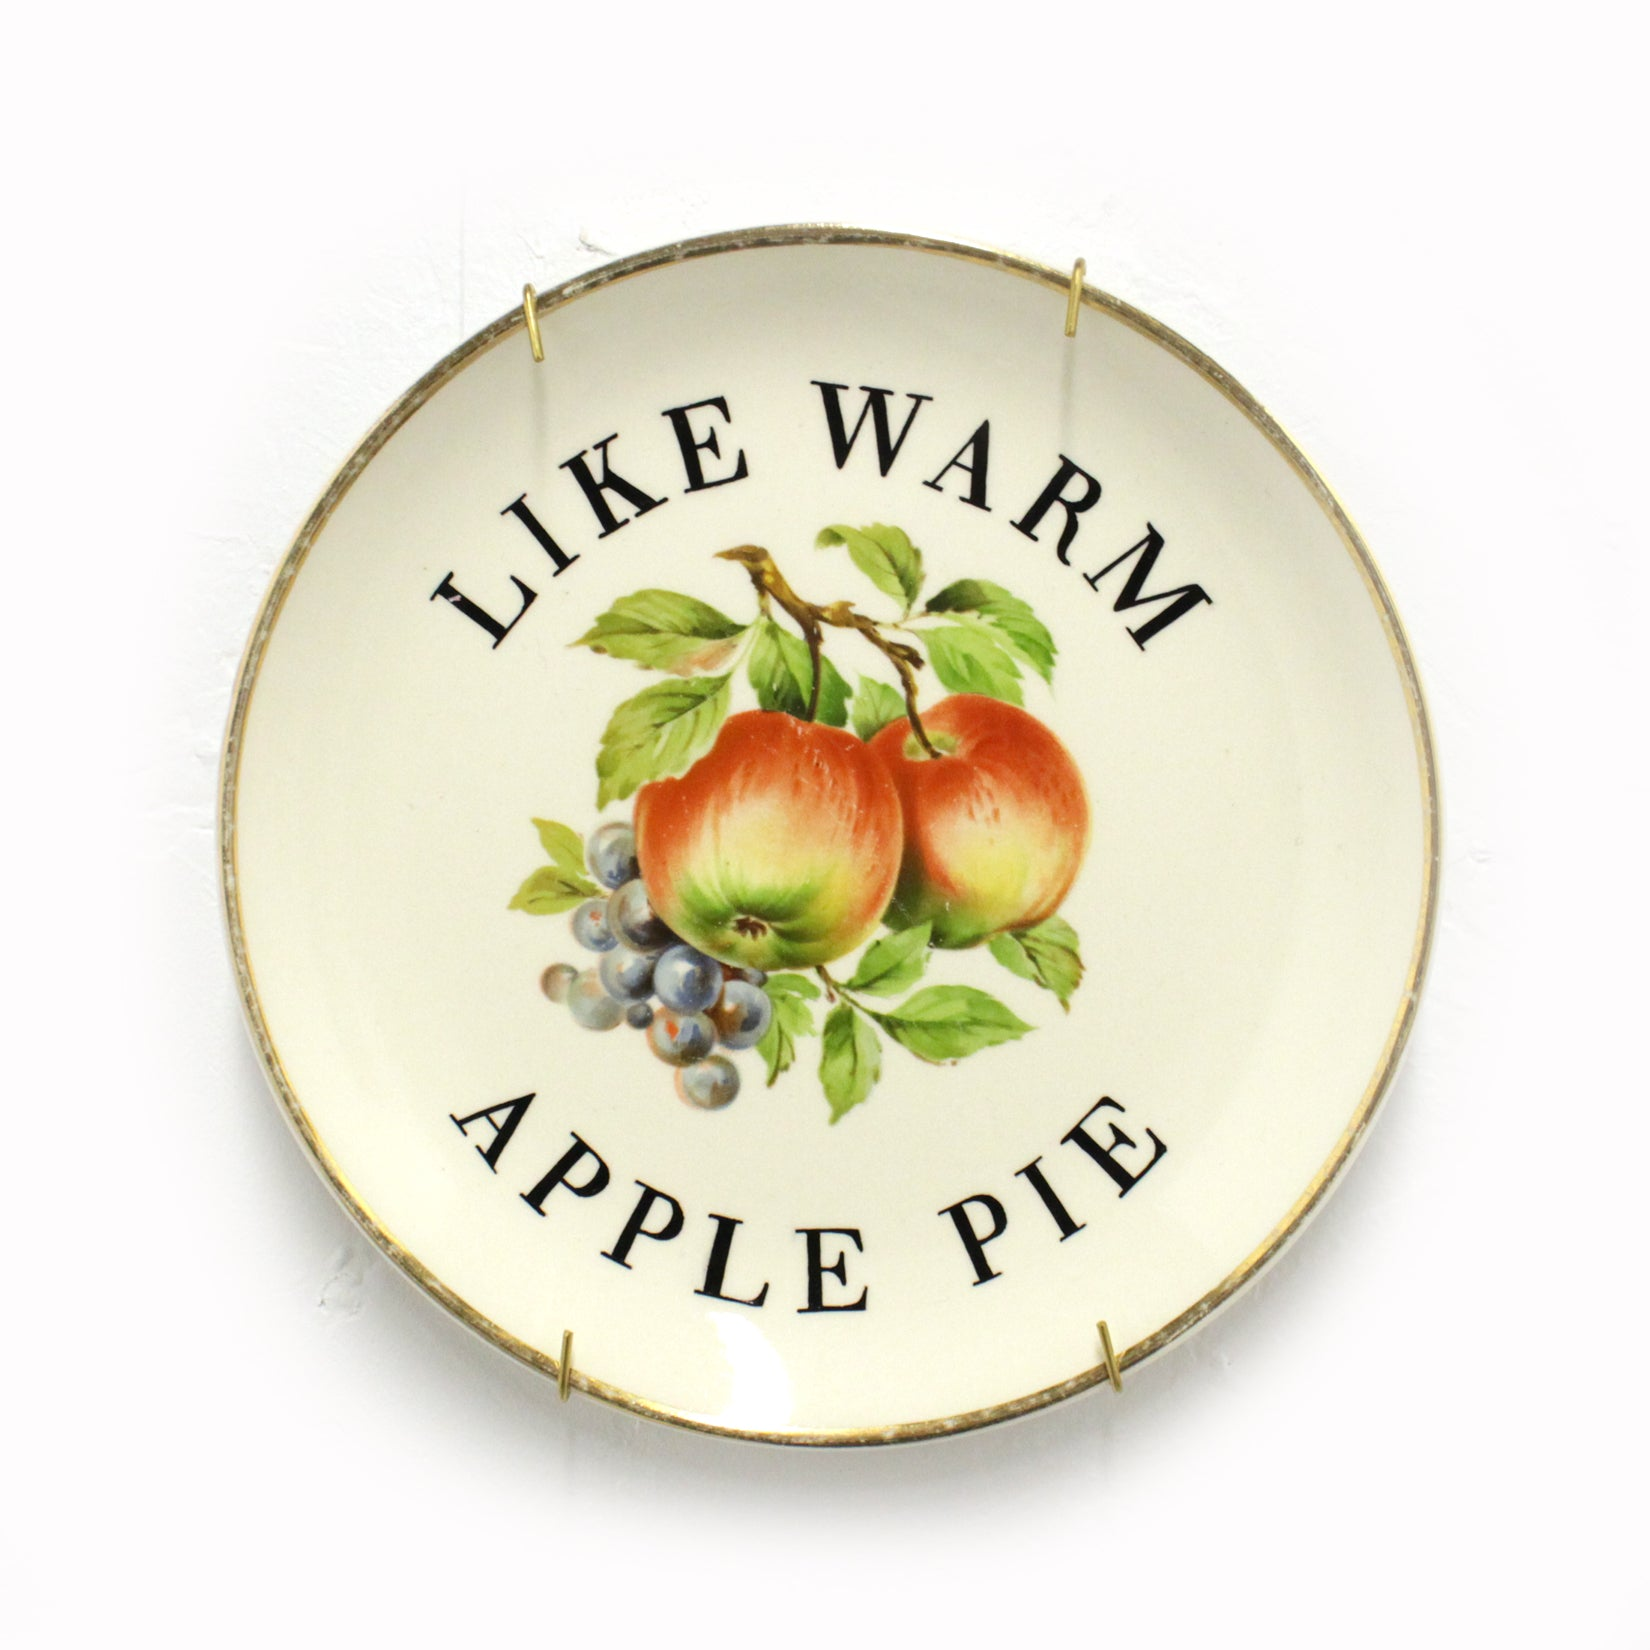 Like Warm Apple Pie